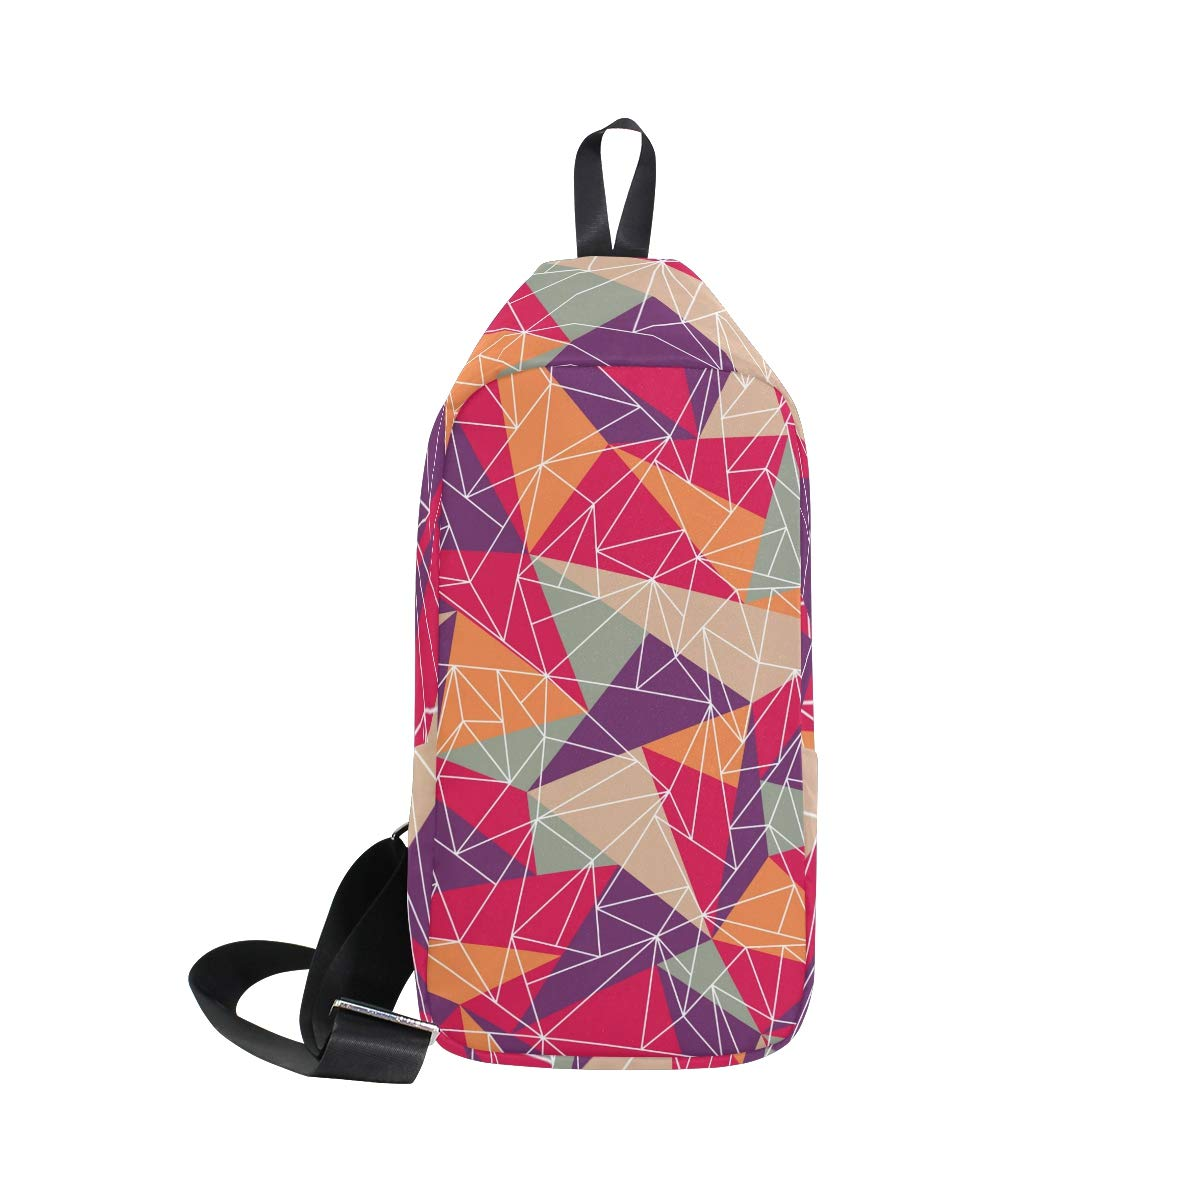 Unisex Messenger Bag Geometric Triangle Shoulder Chest Cross Body Backpack Bag